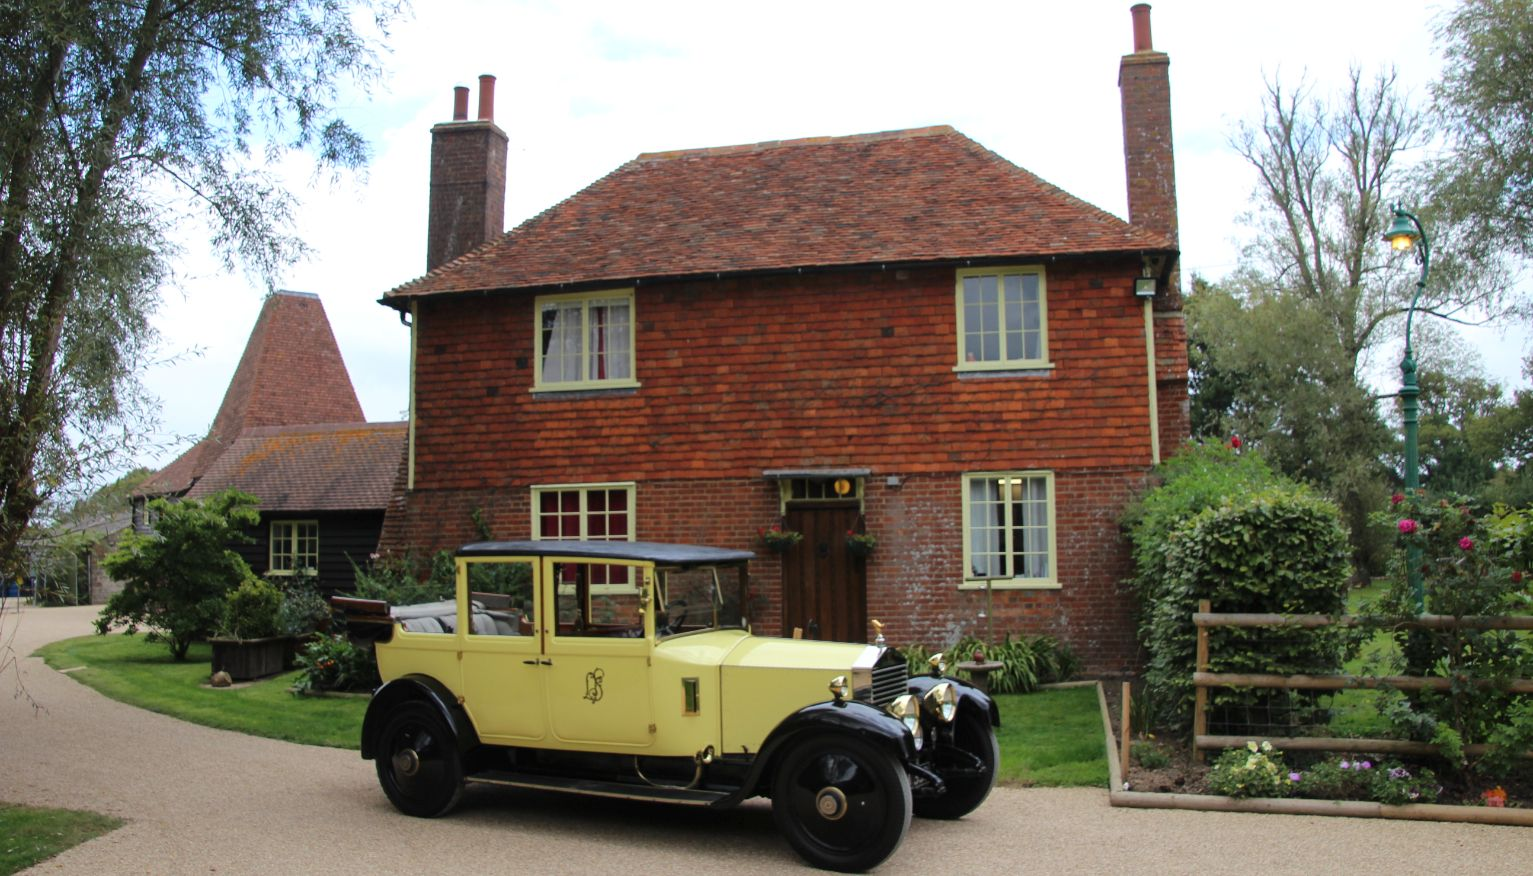 Primrose the original Rolls Royce from the show can be